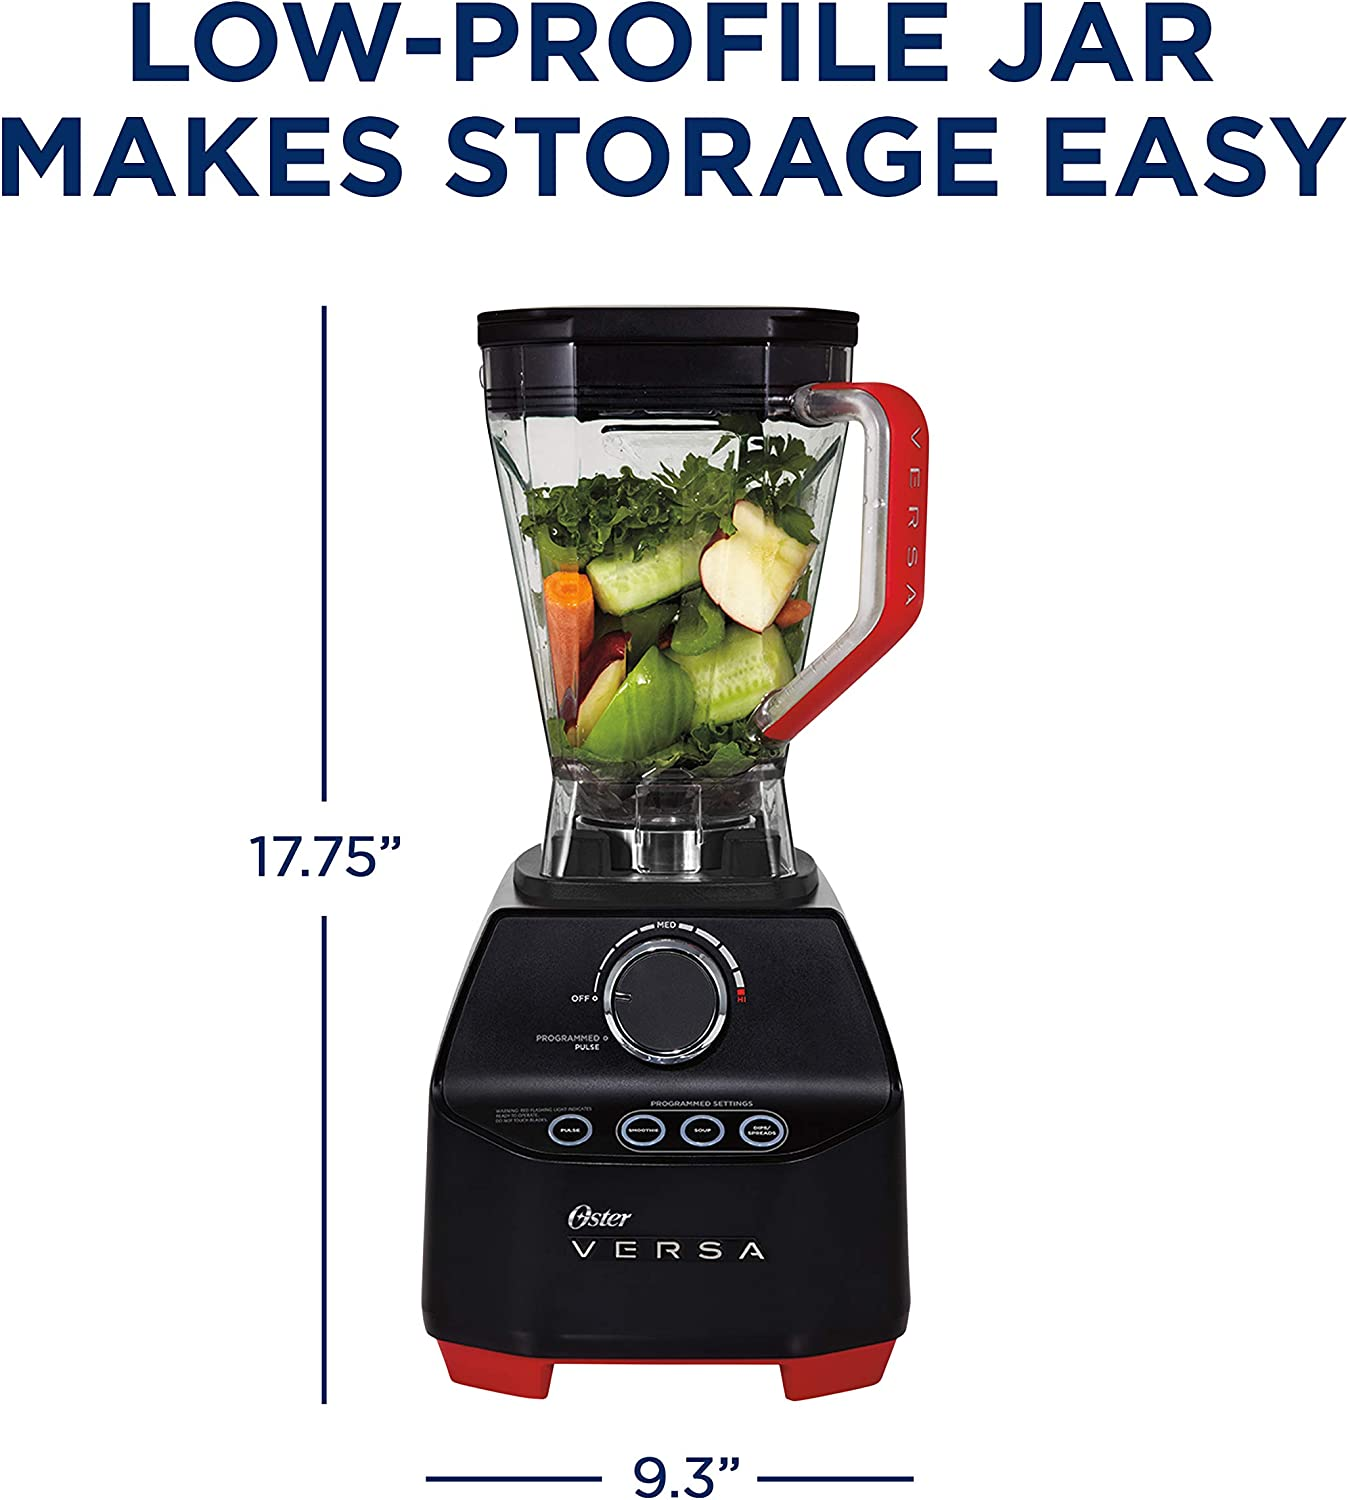 What To Expect From The Oster Versa 1400 Blender?